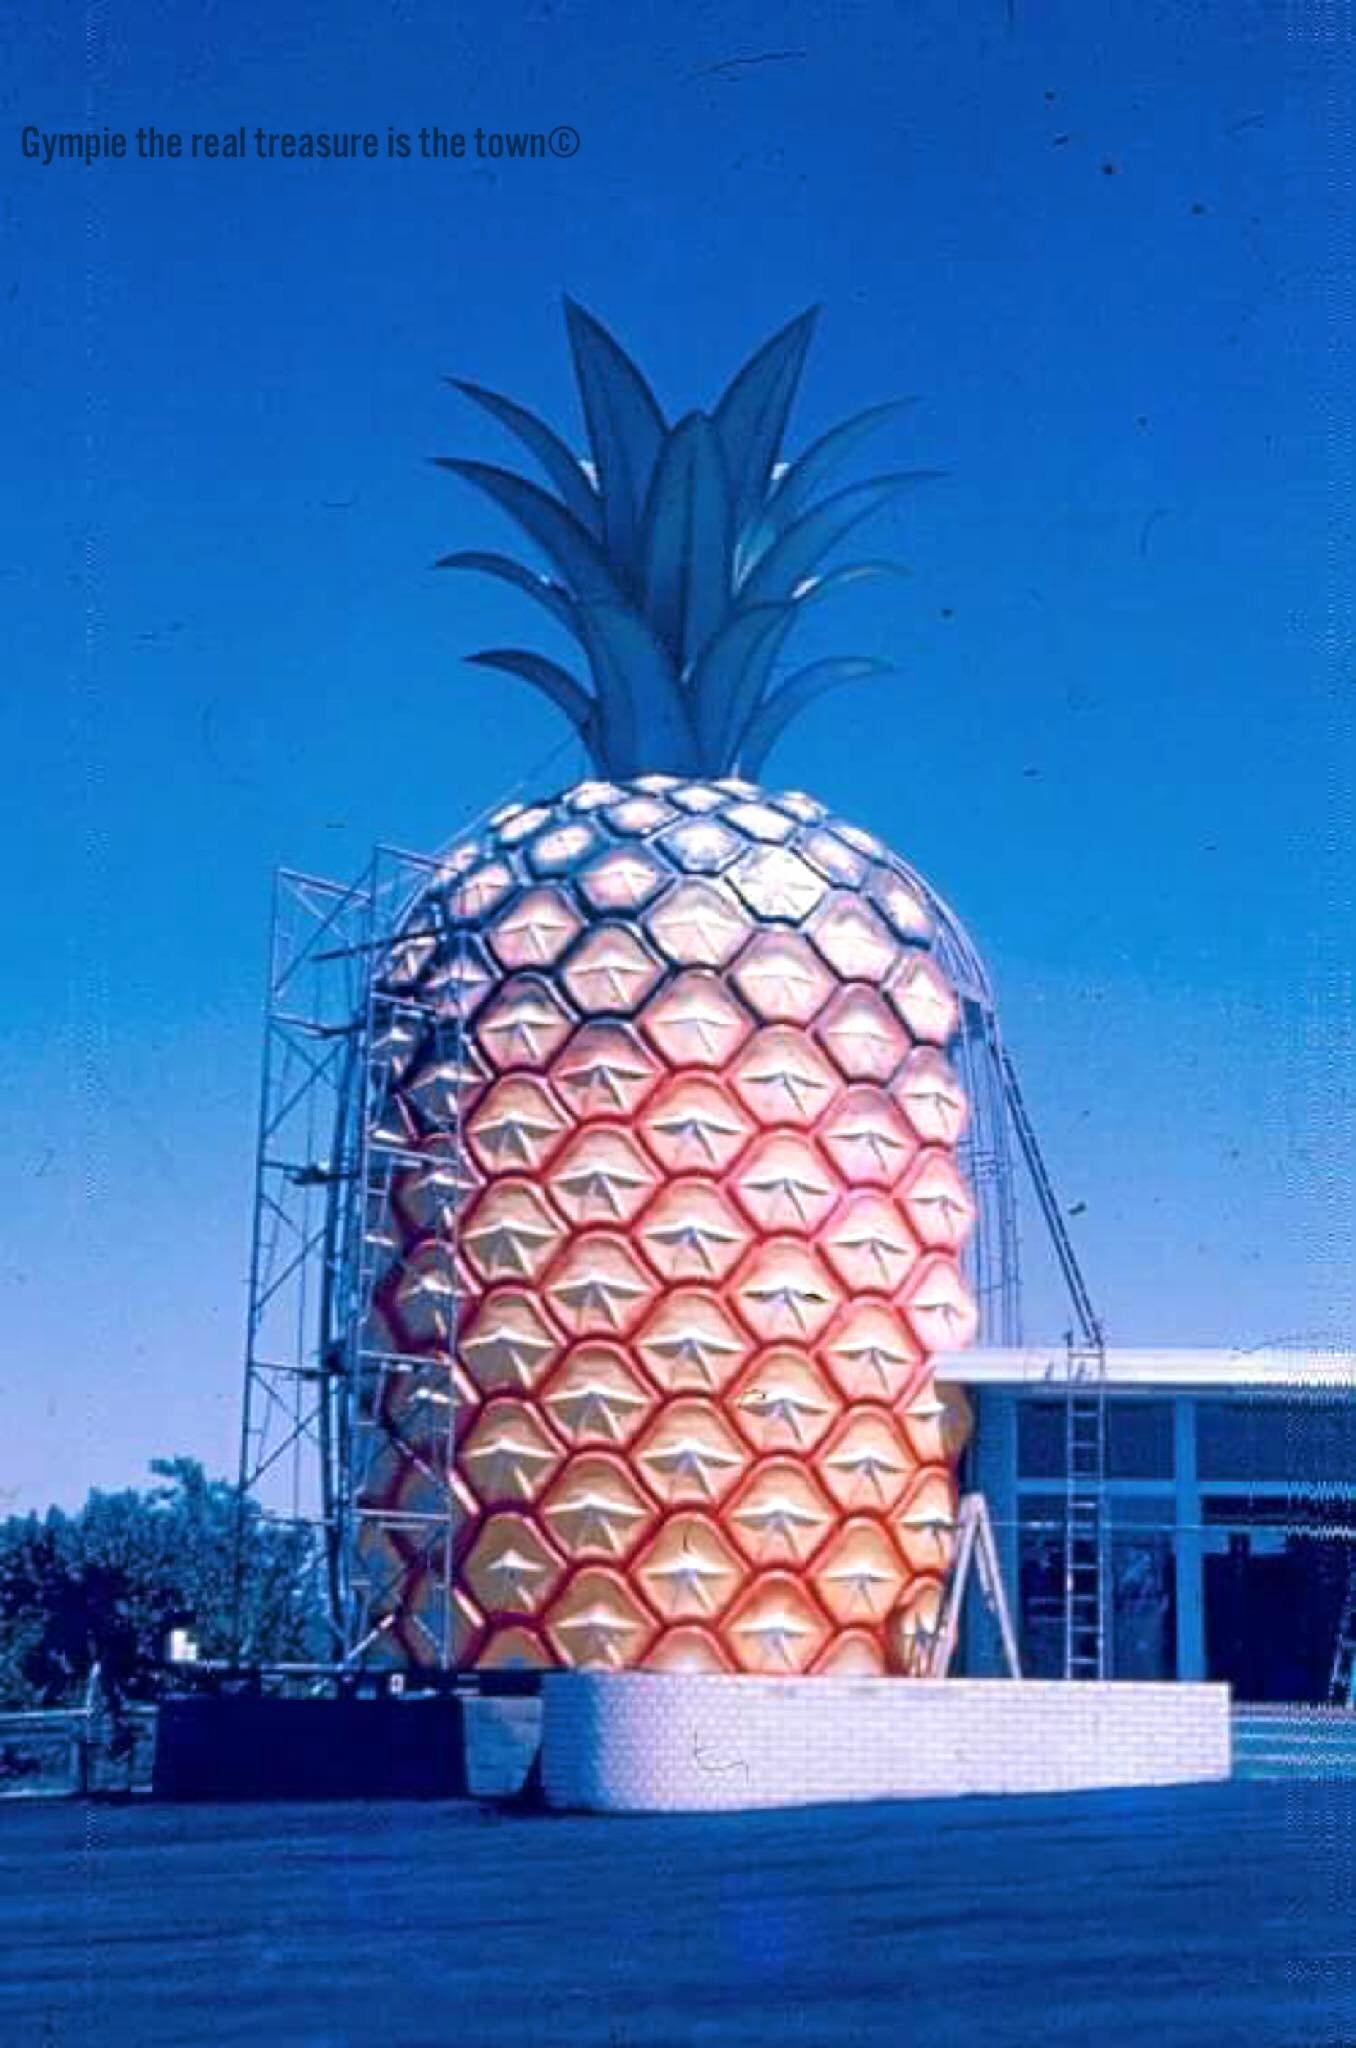 Gympie's long-lost landmark - the Big Pineapple - pictured here as an almost complete construction. Photo courtesy of David English and Gympie: The real treasure is the town FB page.